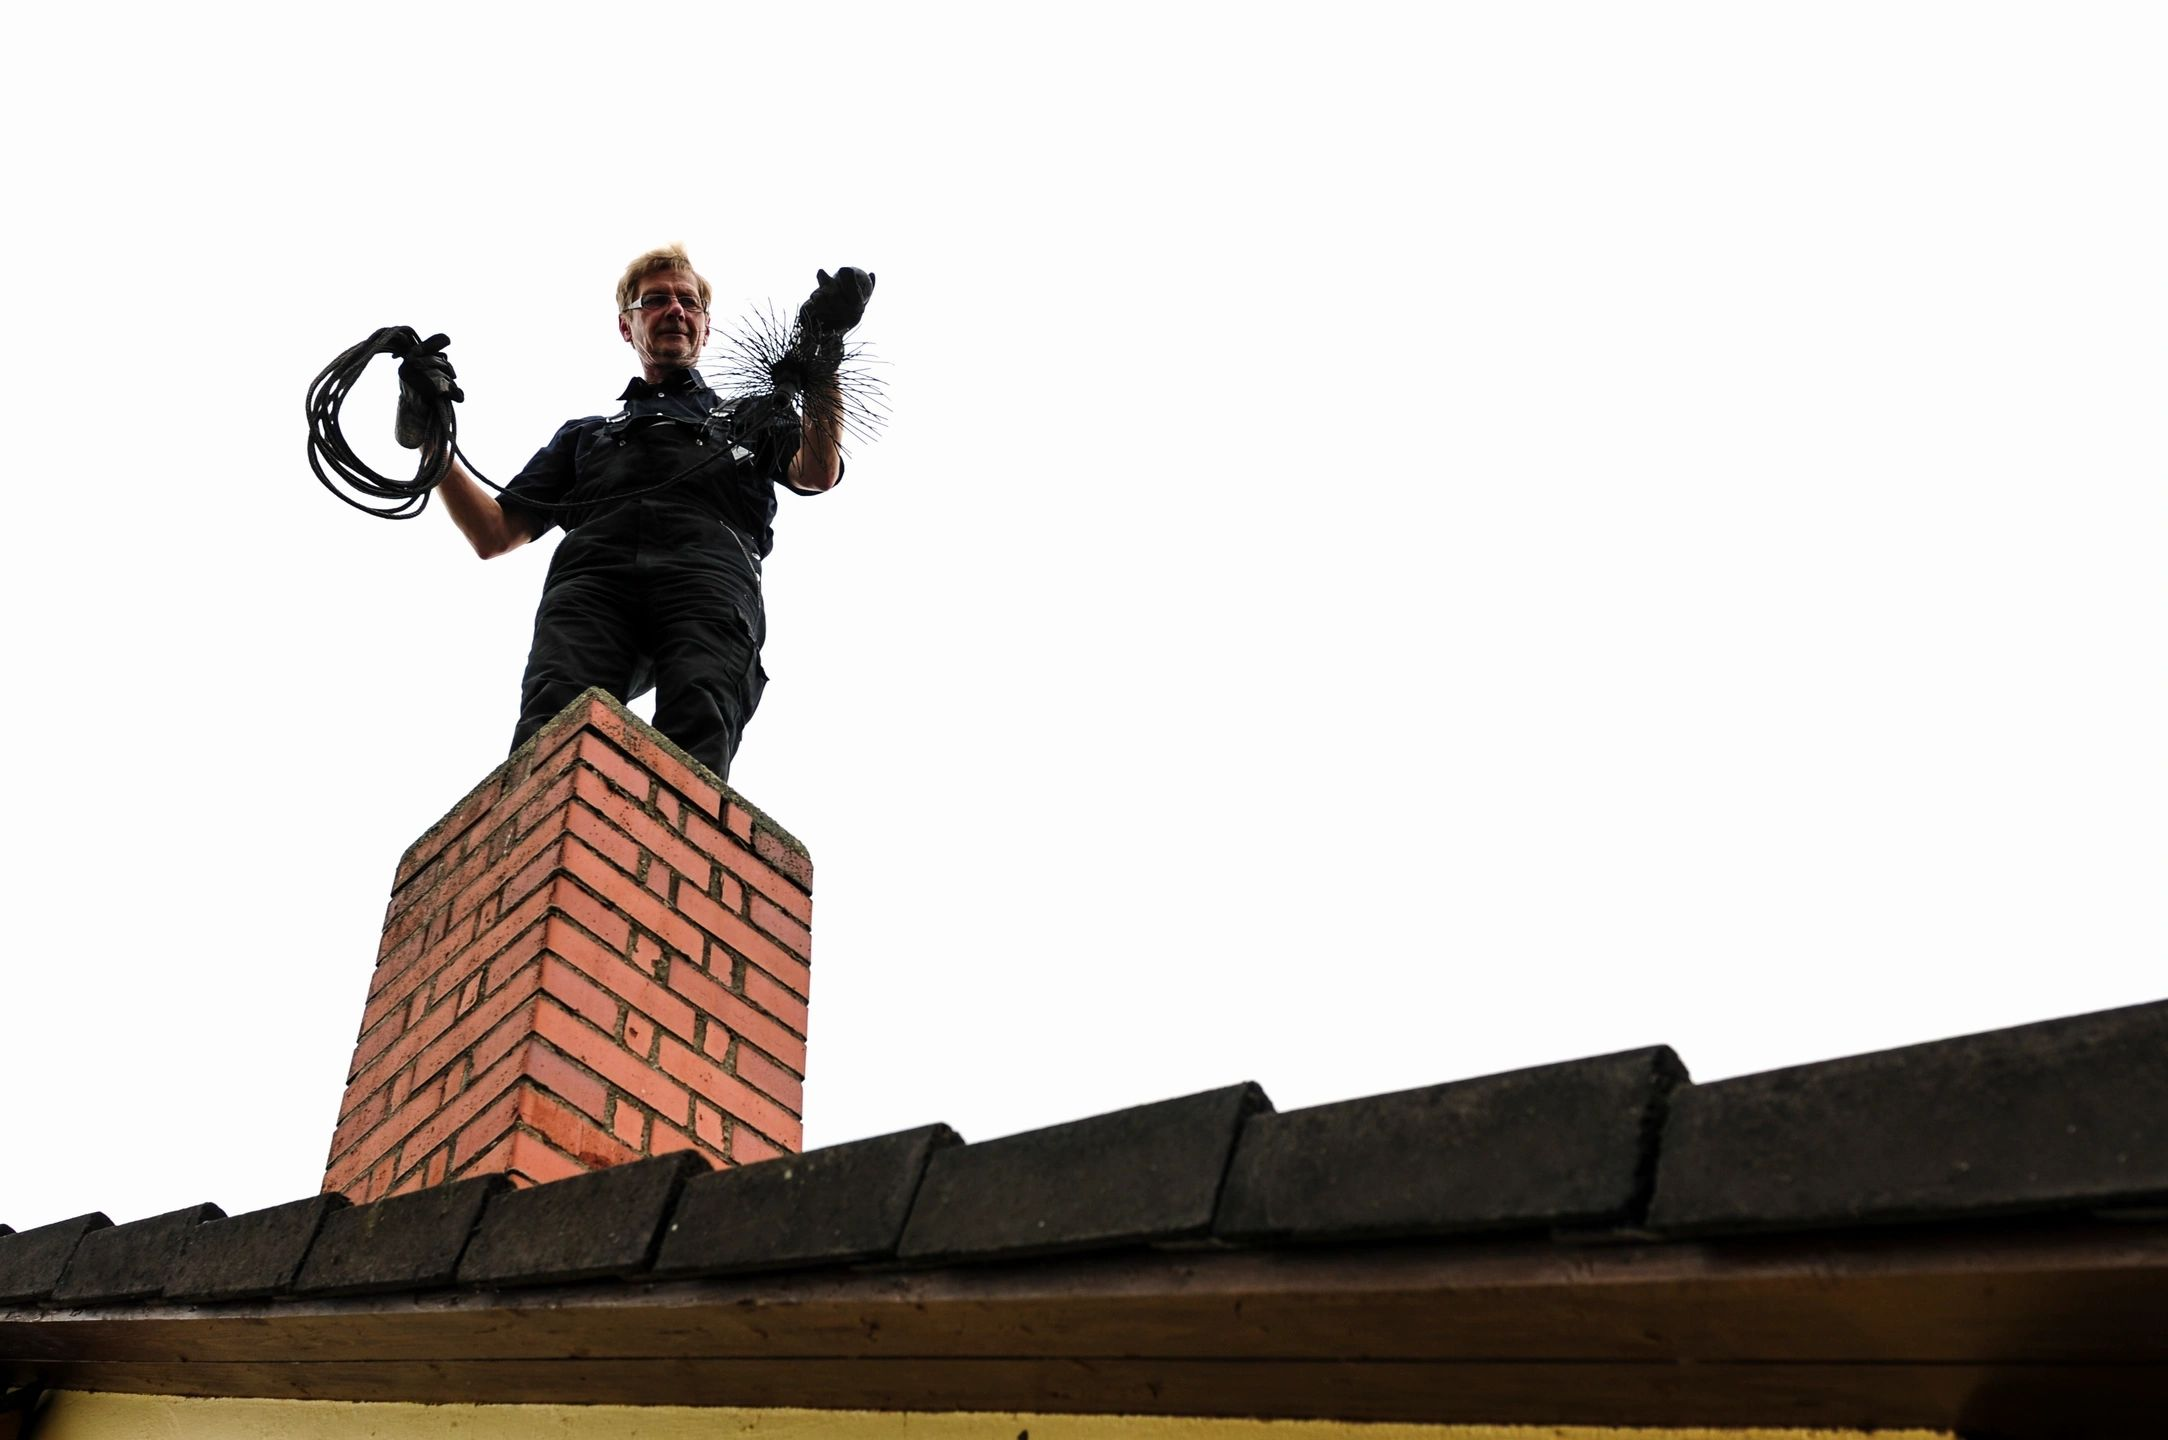 A Chimney Sweep Chimney Cleaning Chimney Repairs